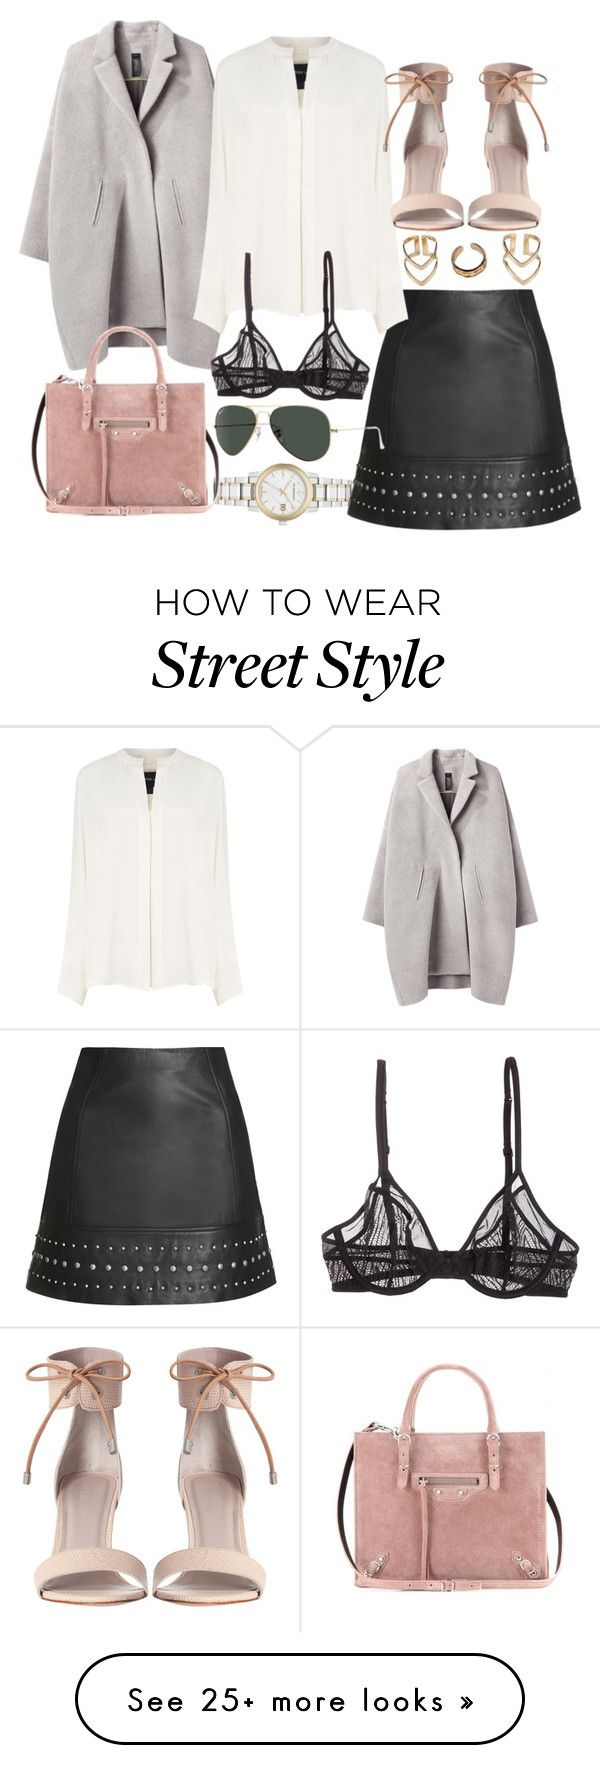 """Untitled #4588"" by sheryl798 on Polyvore featuring Burberry, Zero + Maria Cornejo, Topshop, Derek Lam, Calvin Klein, Zimmermann, Balenciaga and Boohoo"